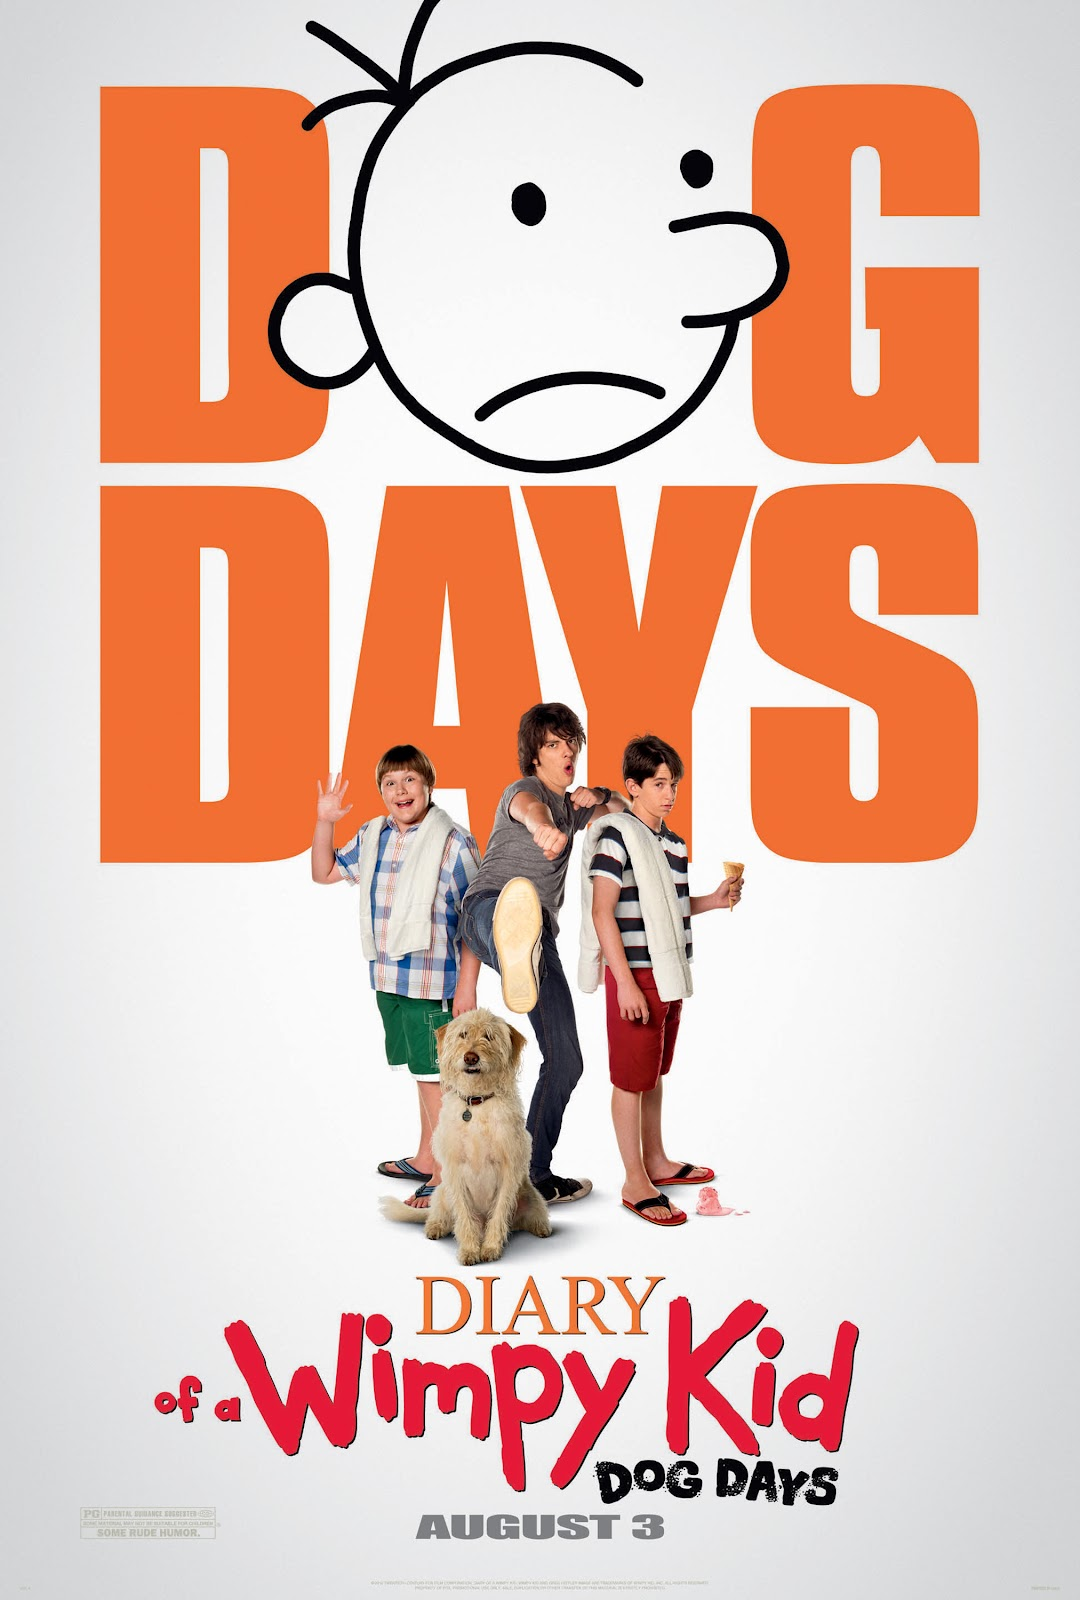 Diary of a wimpy kid dog days hits theaters aug 3 plus giveaway it looks like kaden will be adding to his collection again in november when book 7 is released for now its time for movie 3 diary of a wimpy kid dog solutioingenieria Gallery